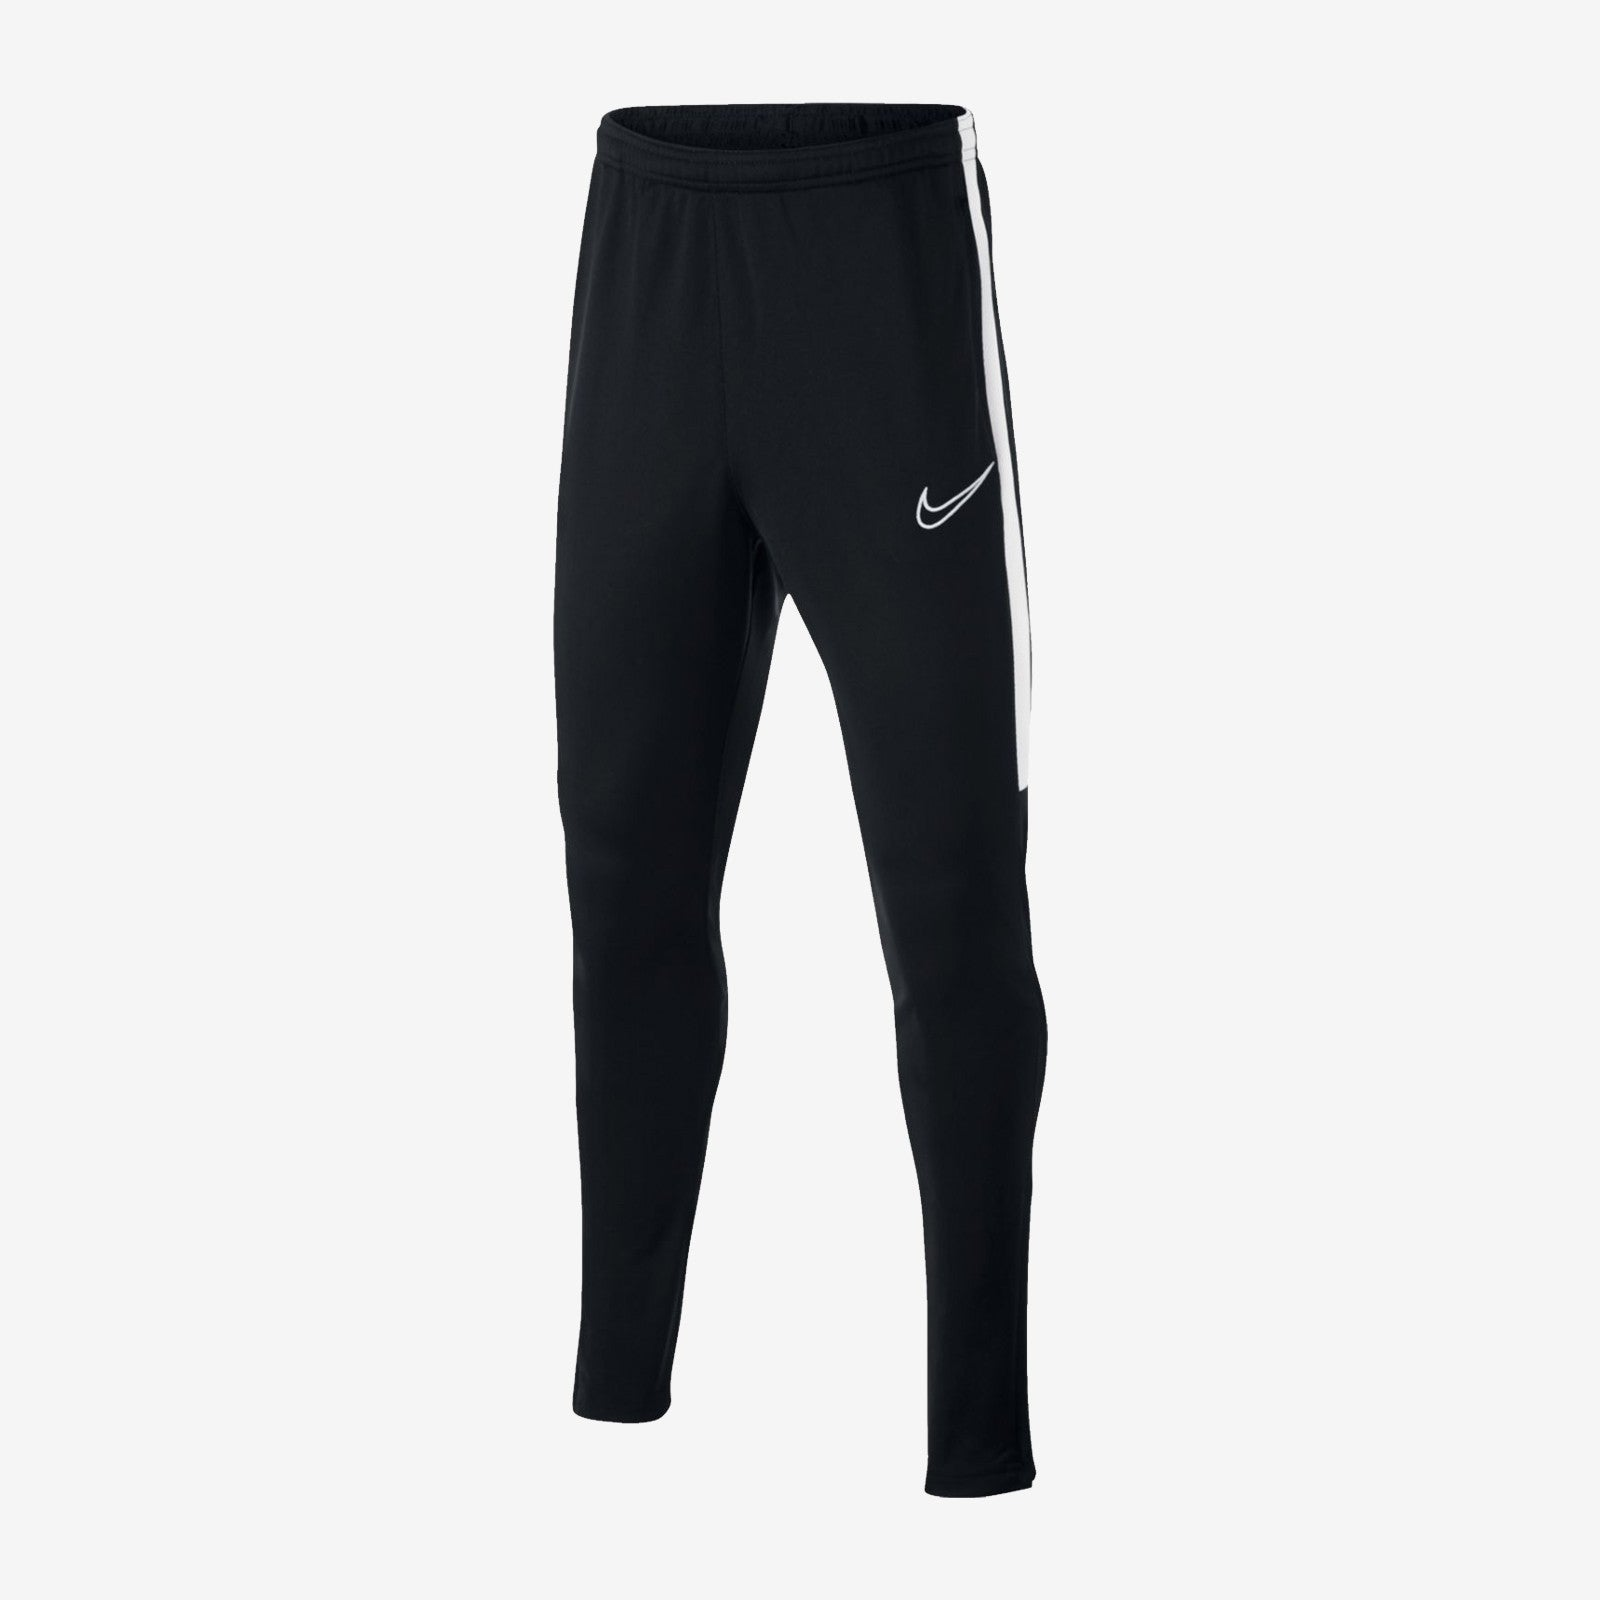 Kid's Dri-FIT Academy Soccer Pants - Black/White